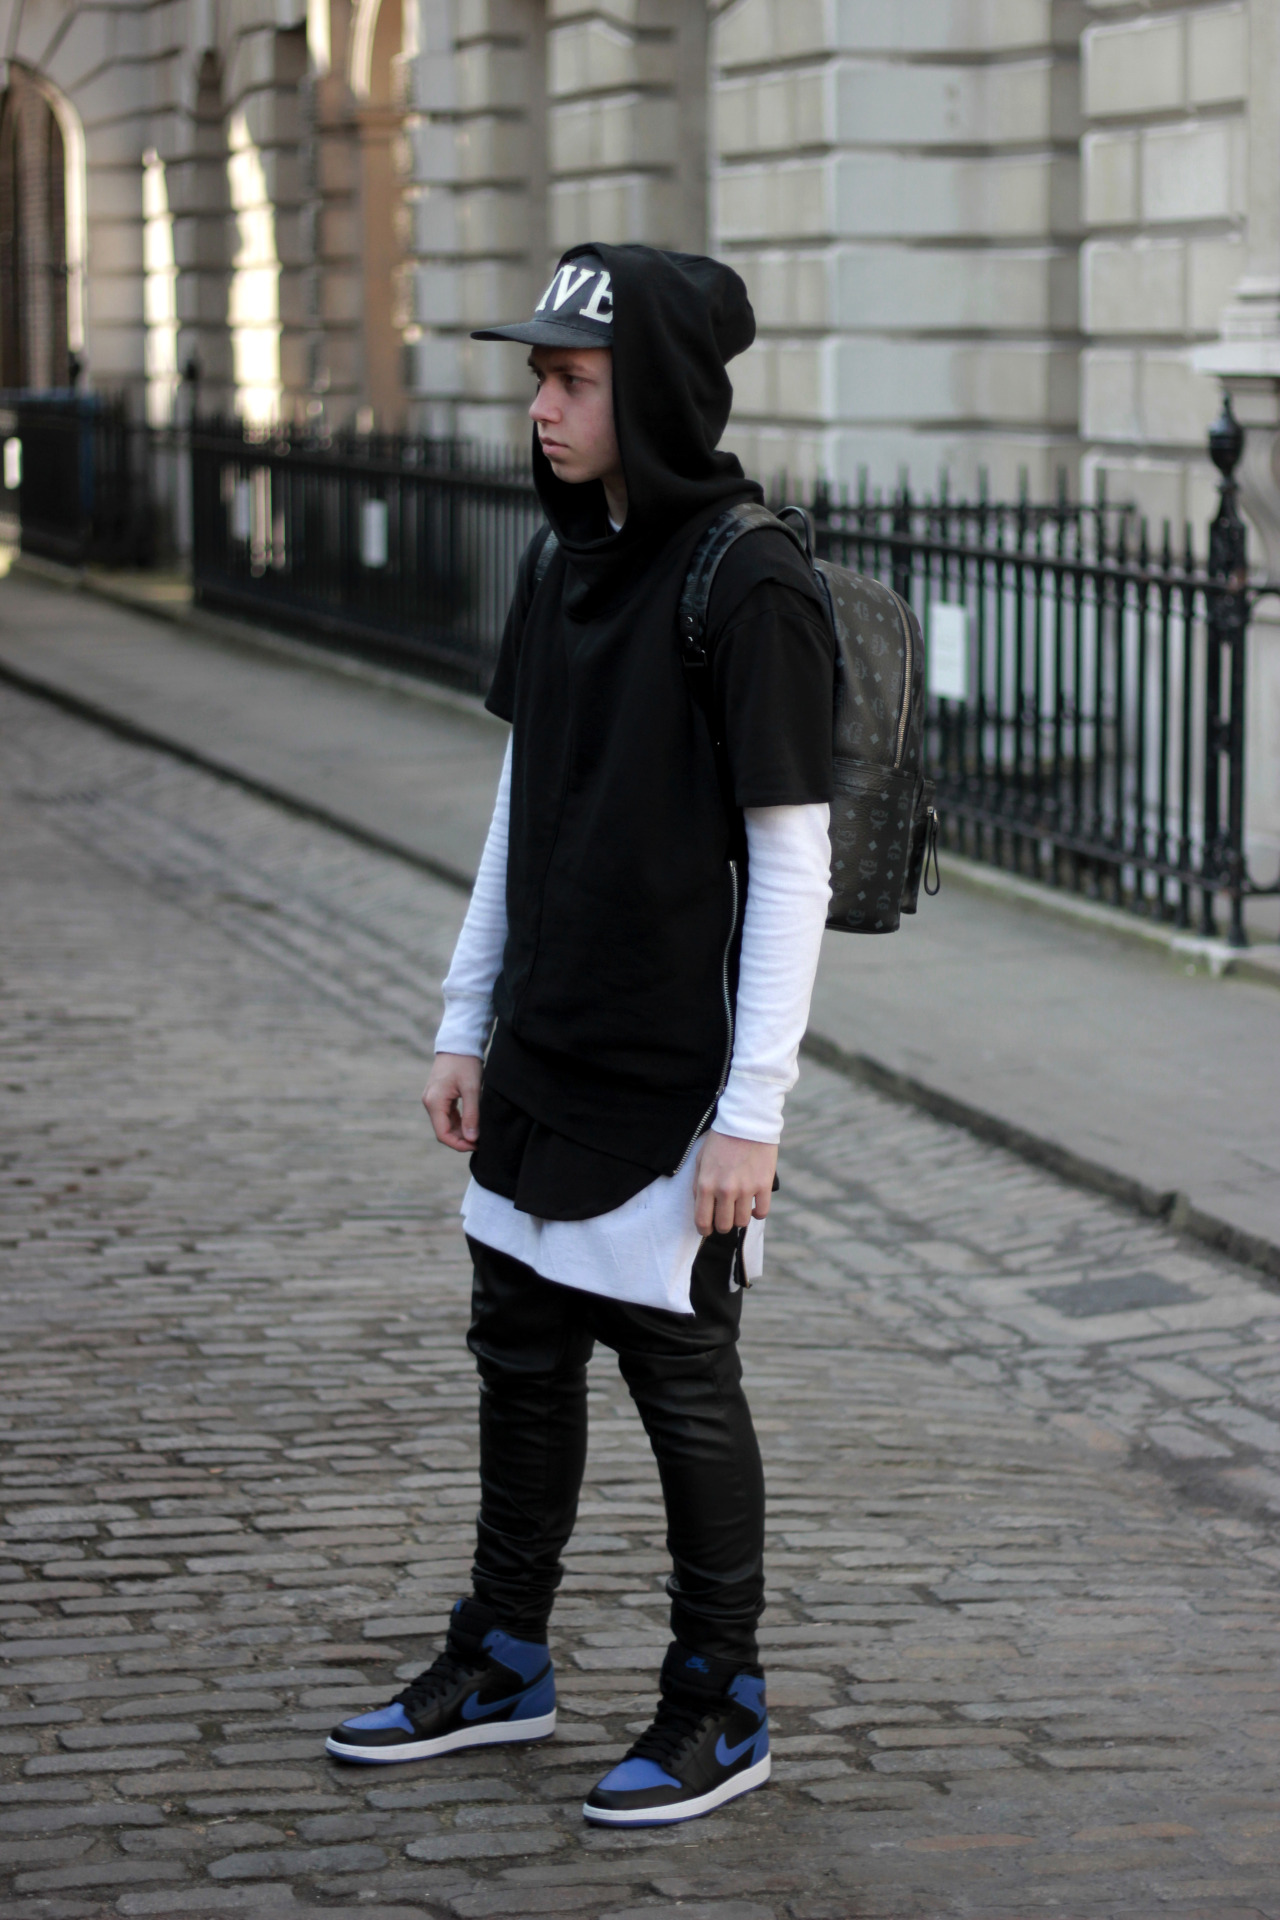 mcfurry:  Max Furr wearing ADYN at London Fashion Week.